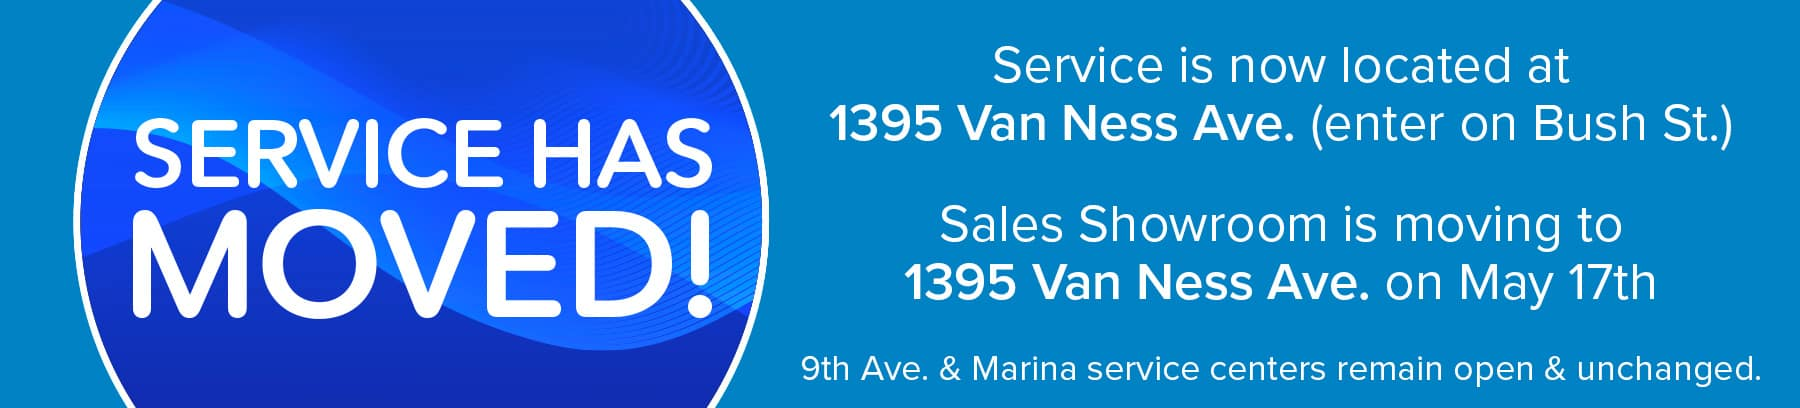 Service Has Moved to 1395 Van Ness Ave